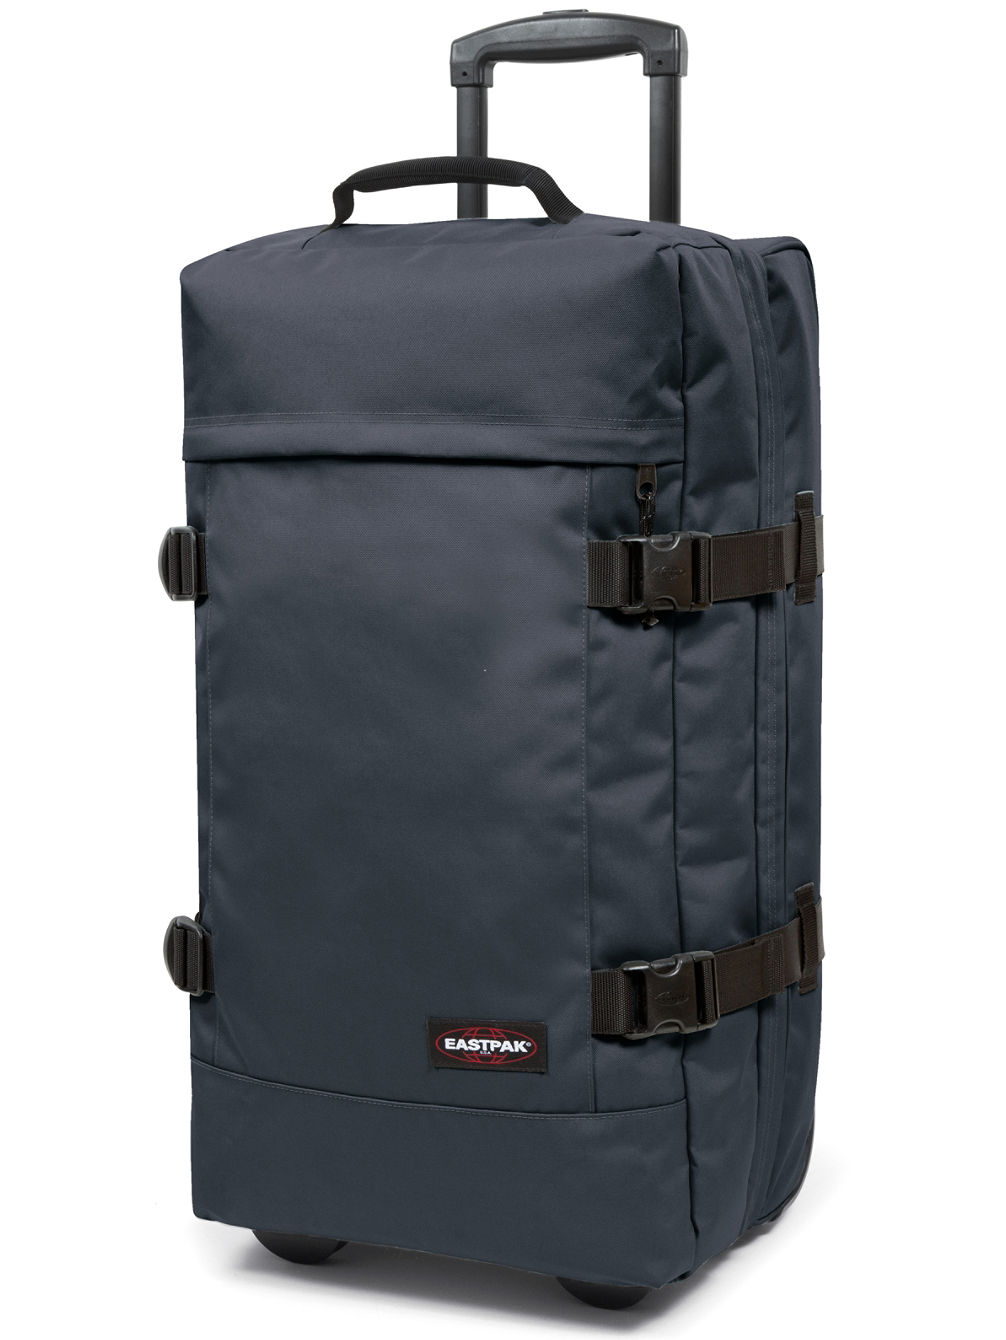 Buy Eastpak Tranvers M Travelbag online at blue-tomato.com